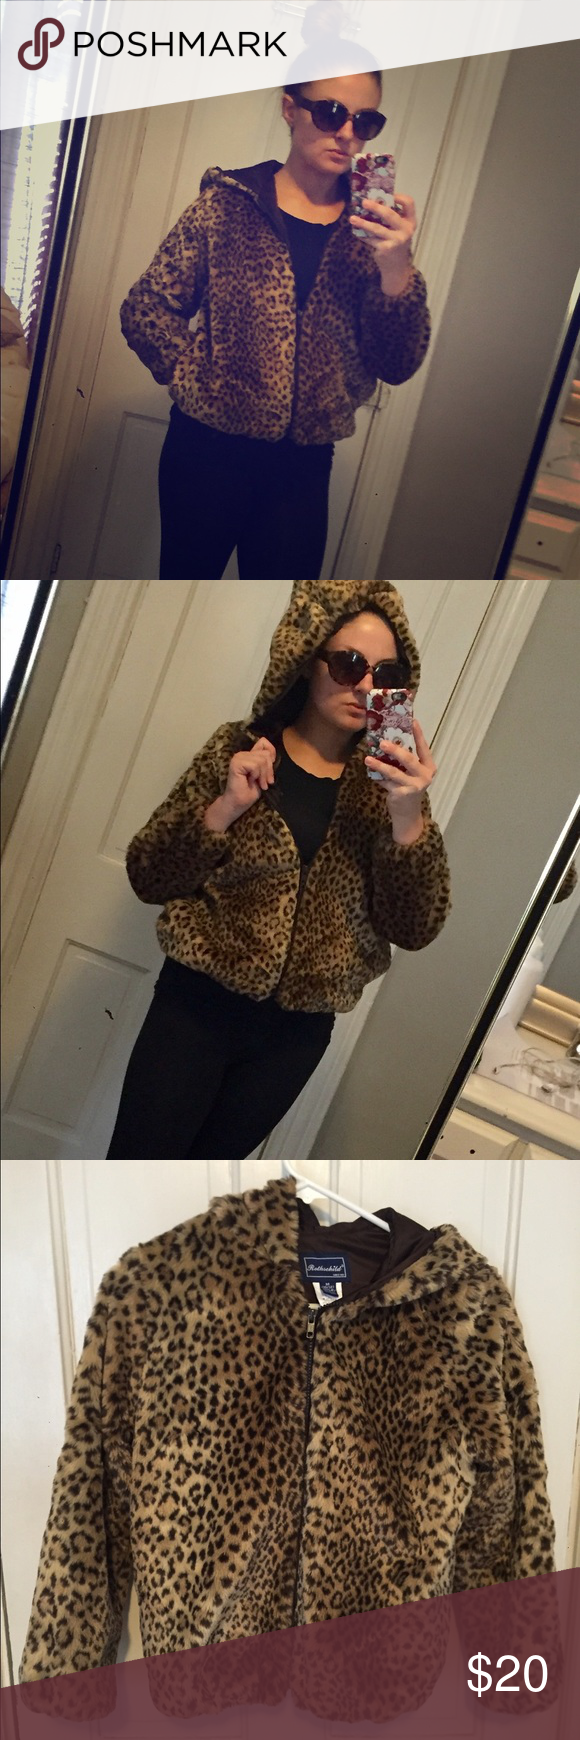 Luxurious Faux Cheetah Fur Jacket Super comfy & warm! Add this piece to your wardrobe for a steal! Bundle & Save or MAKE AN OFFER!! 😊 Jackets & Coats